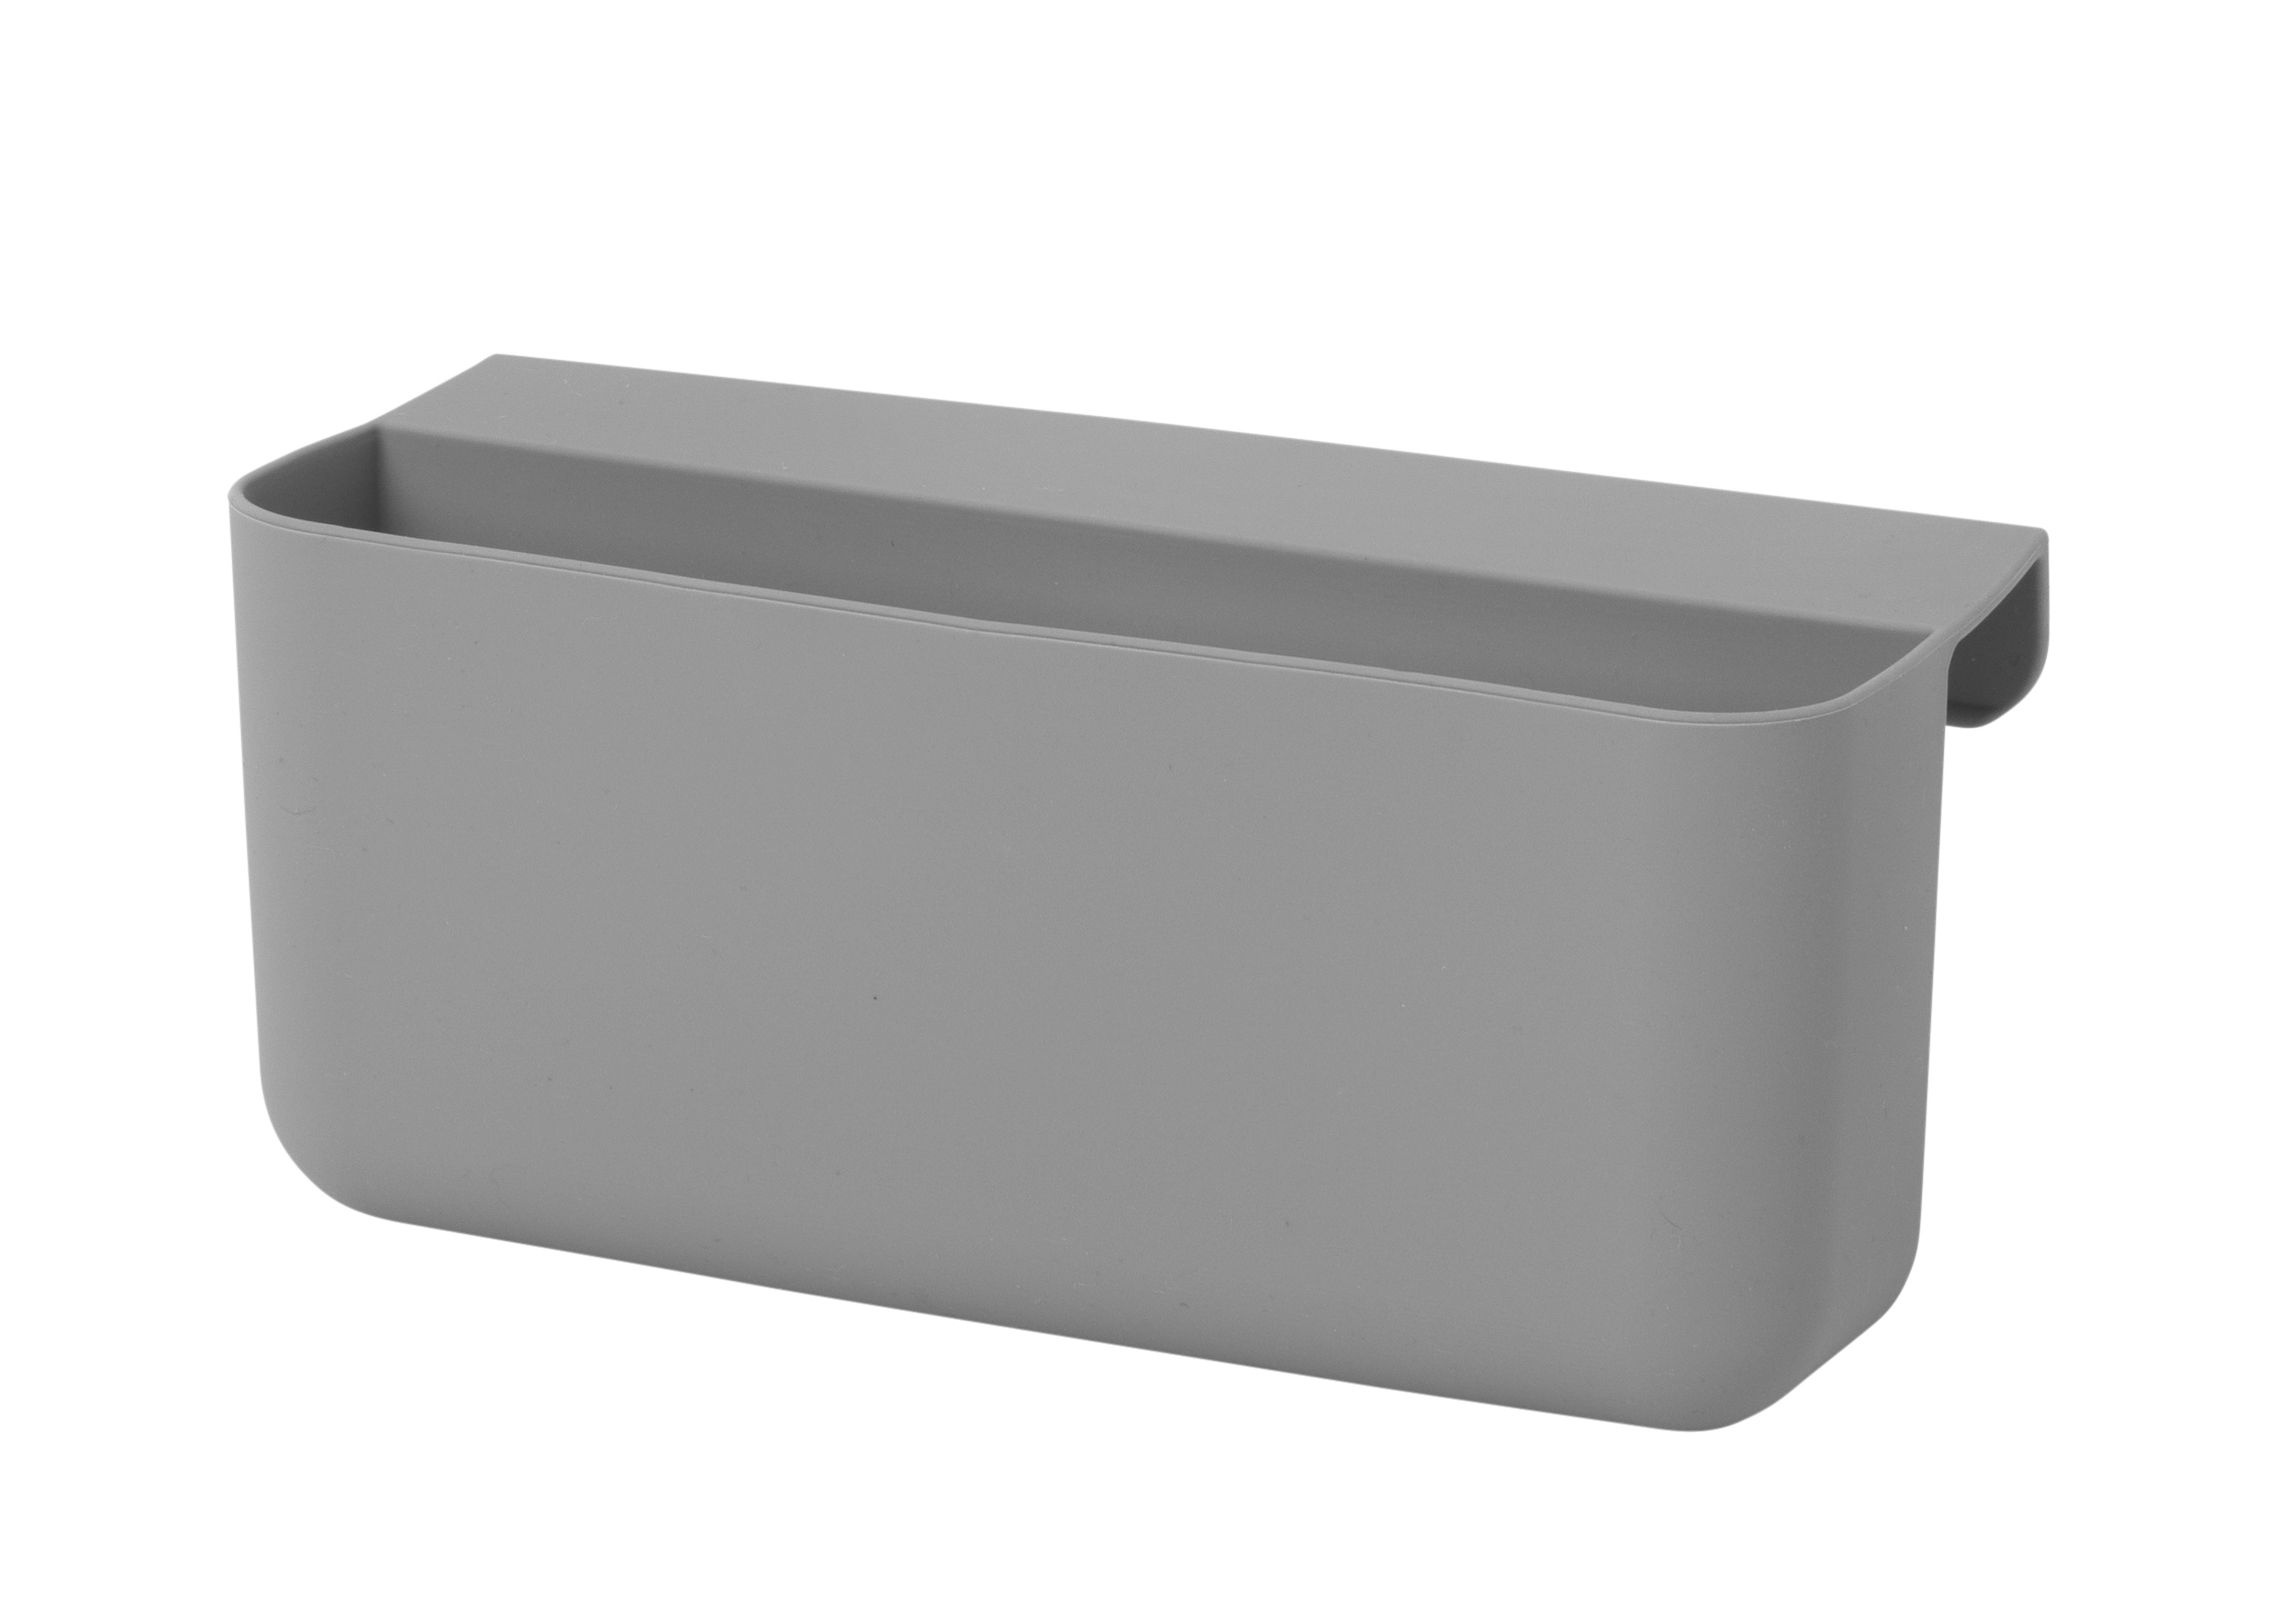 Decoration - Children's Home Accessories - Little Architect Large Box - / Silicon by Ferm Living - Large / Grey - Silicone